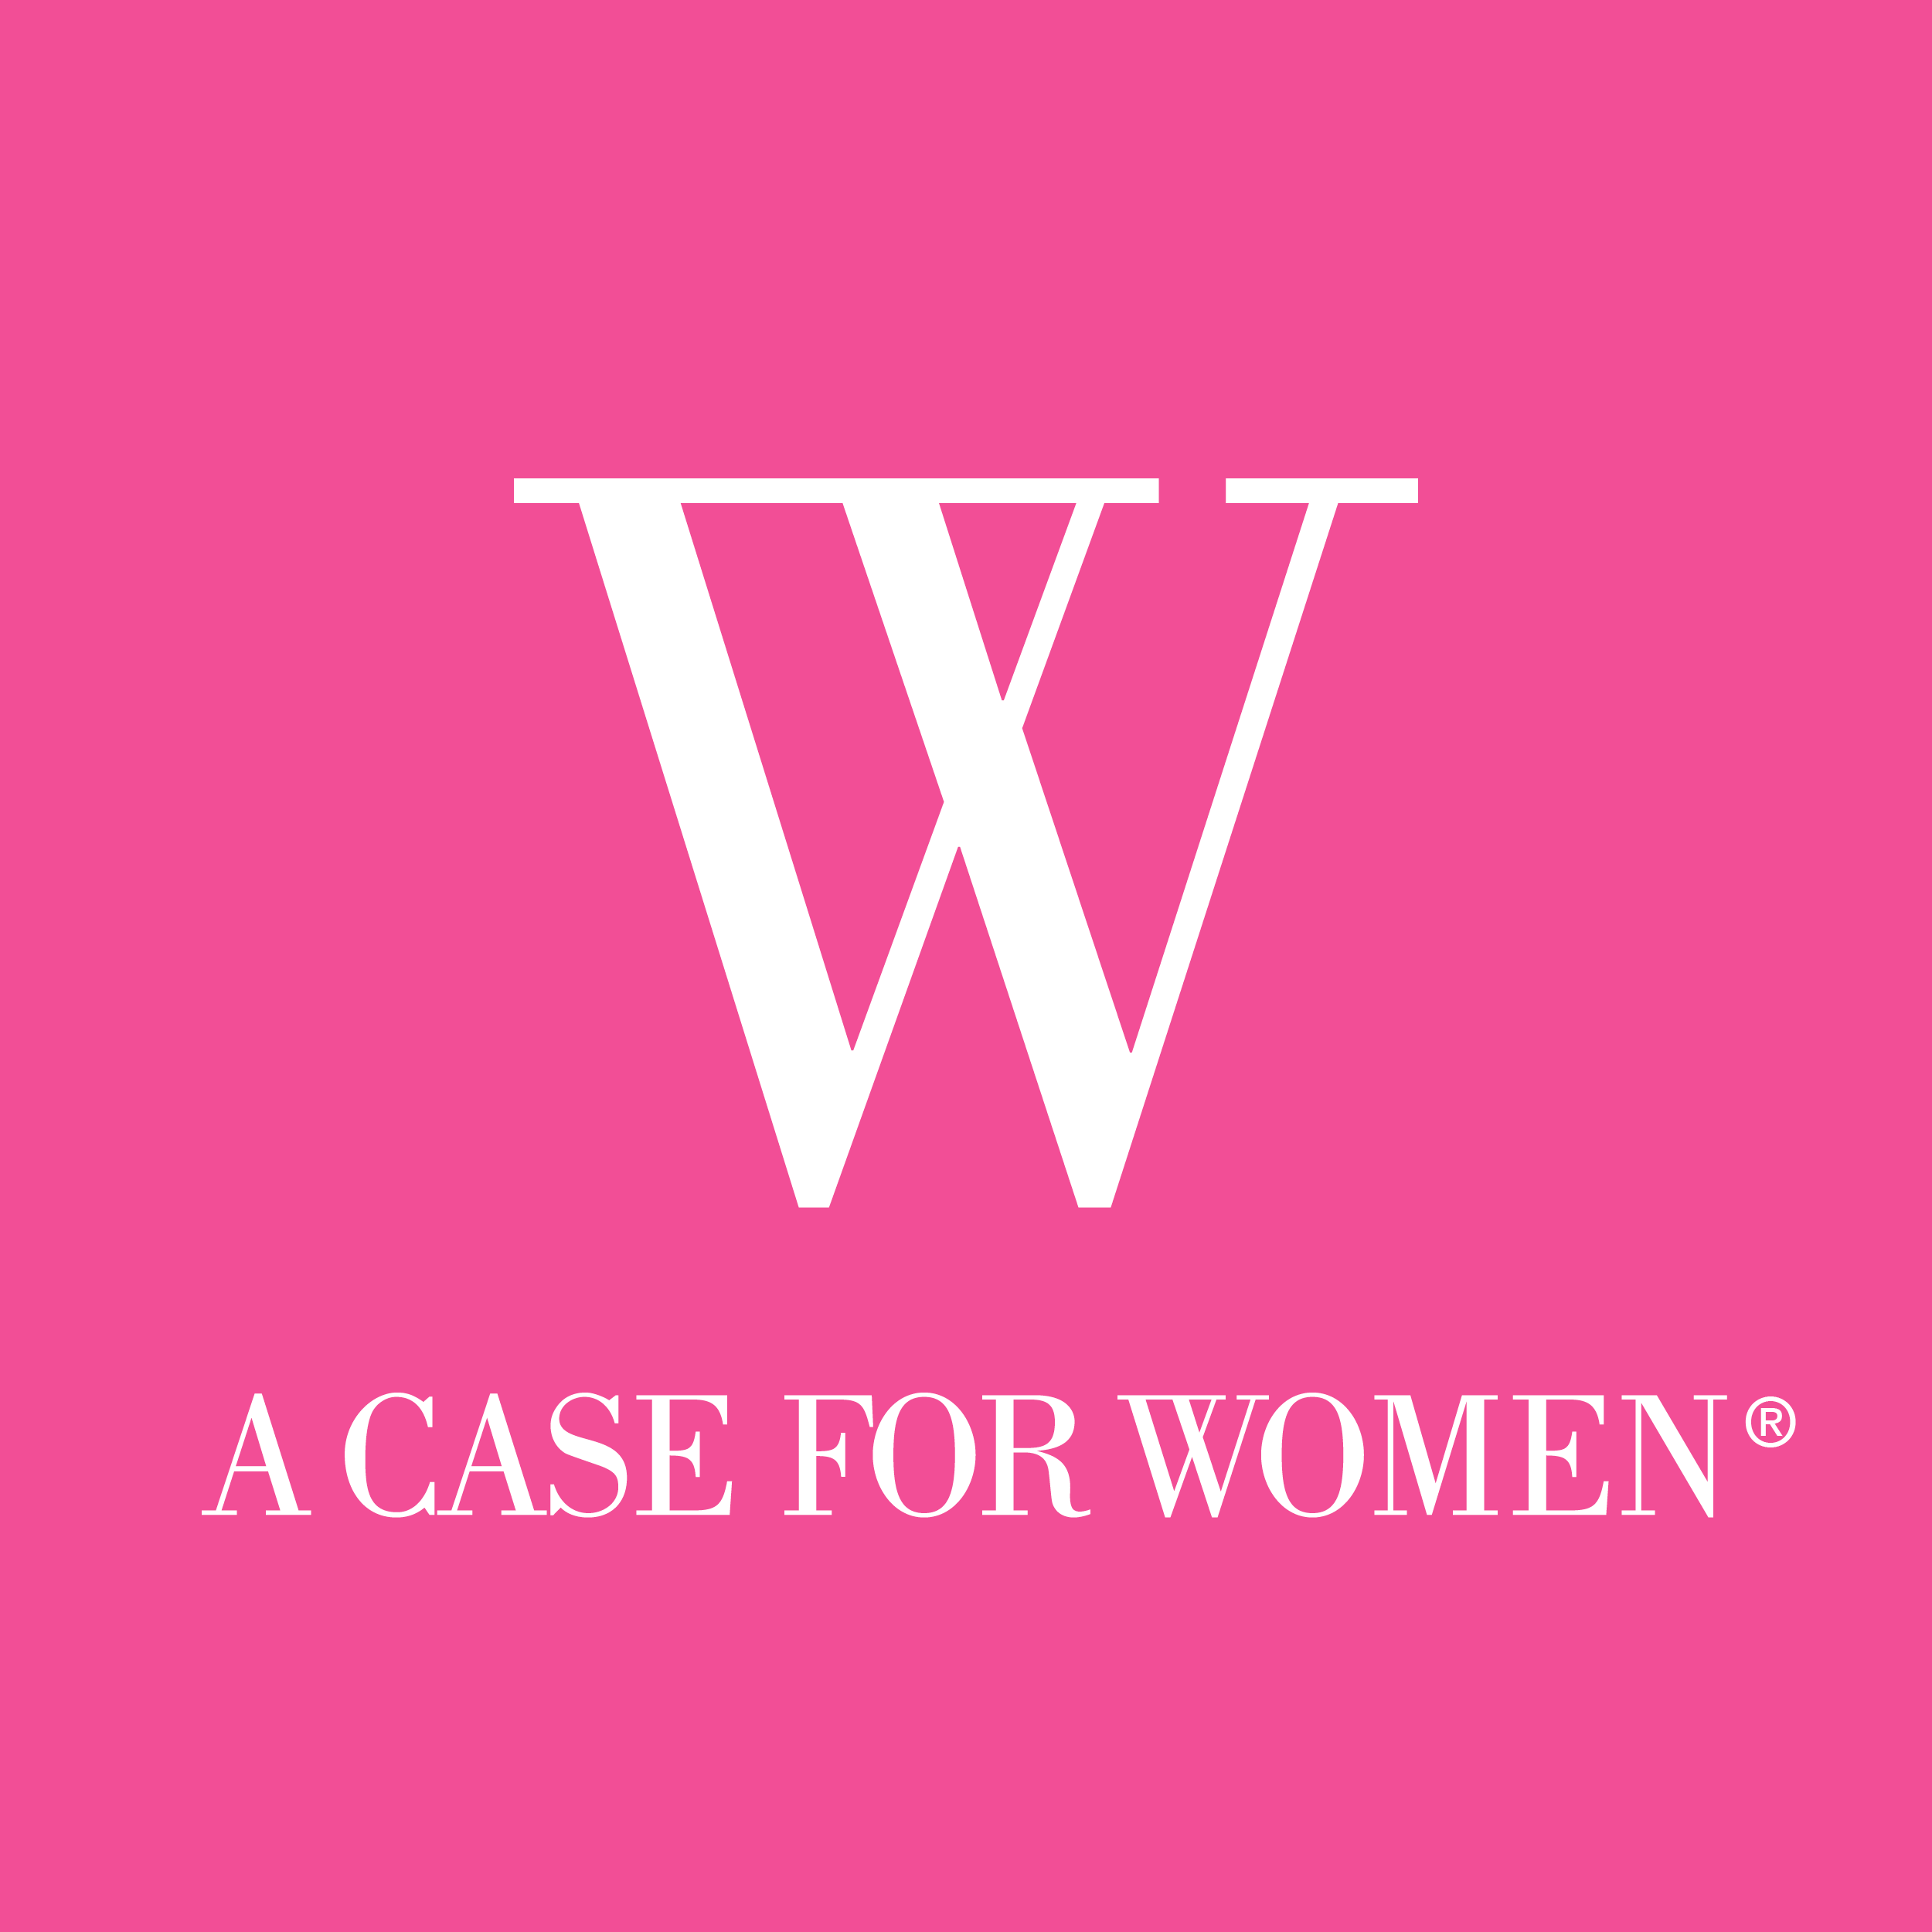 A Case for Women